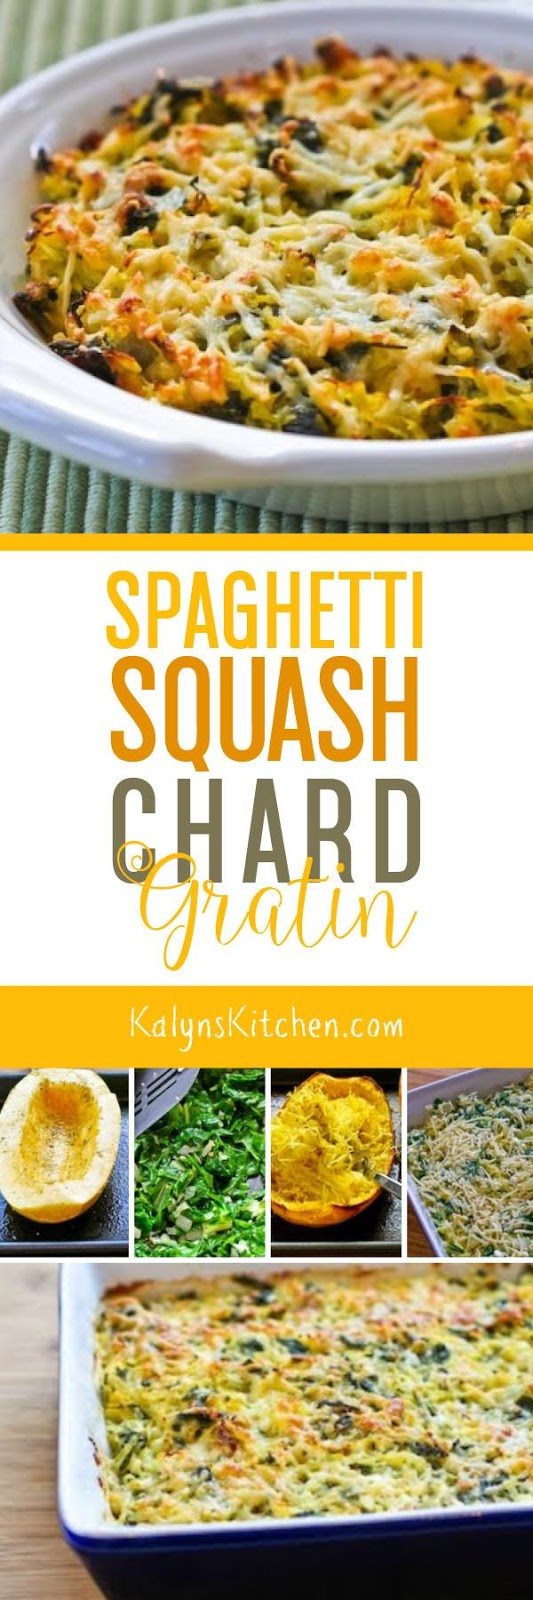 Spaghetti Squash and Chard Gratin is my entry for Weekend Herb ...